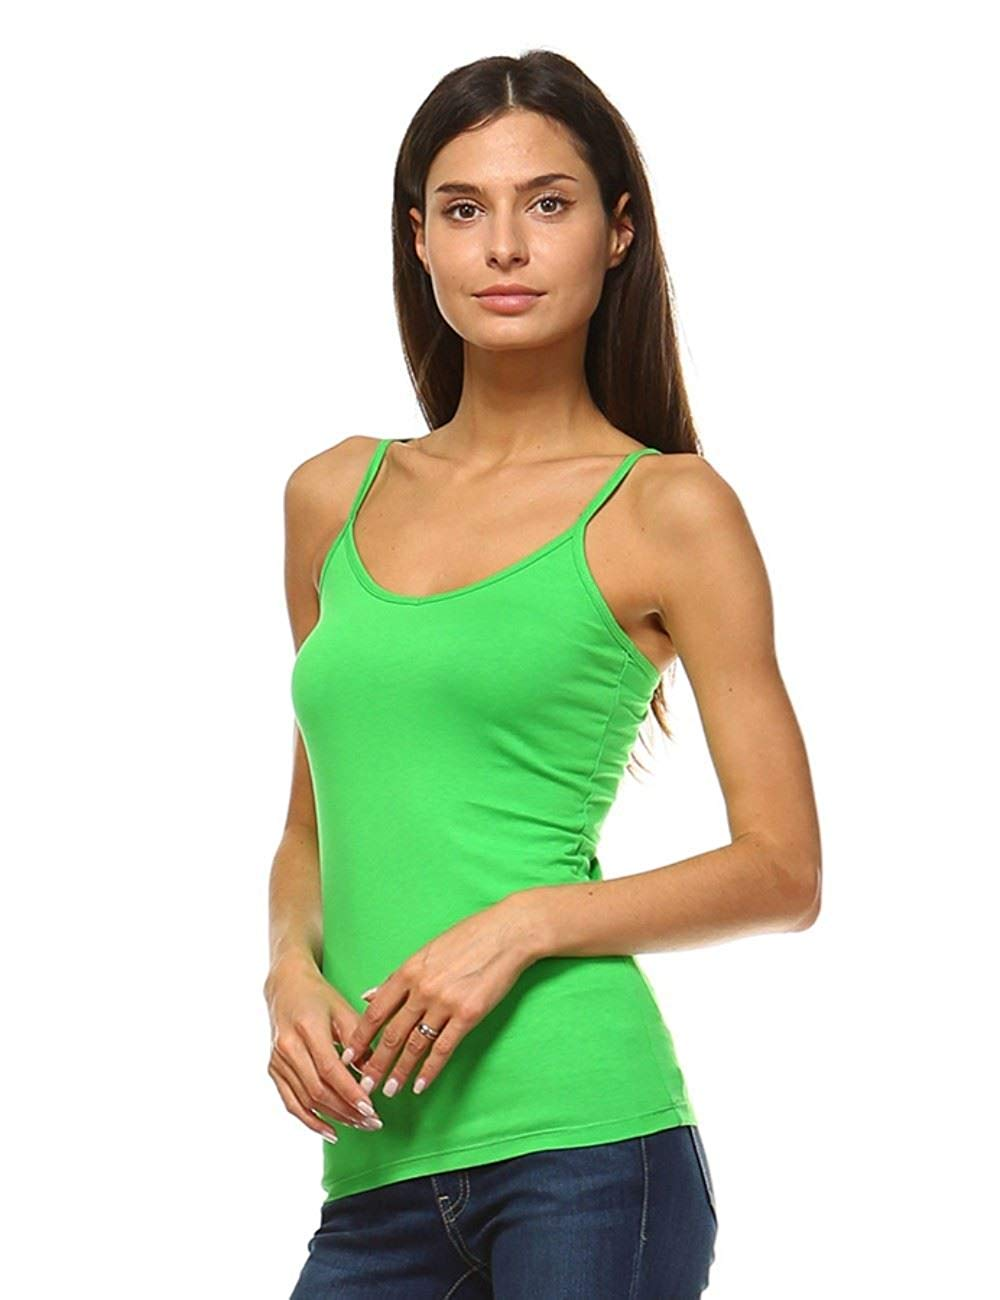 478d4472e32c3 Get Quotations · Anna Women s Camisole 3-Pack Basic Cami Tanks Spaghetti  Strap Super Tight Fit Solid Various